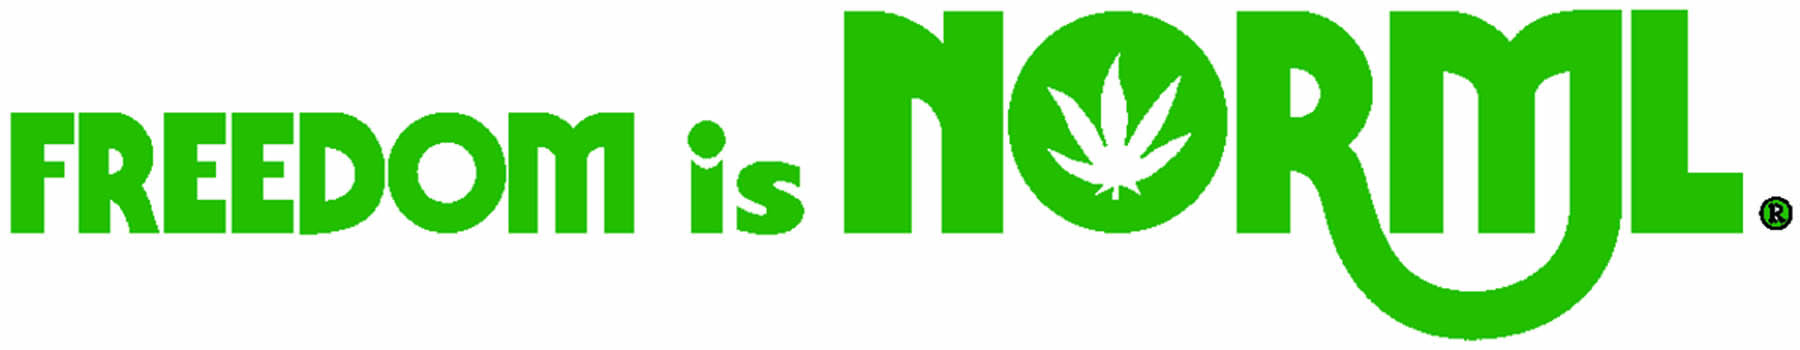 https://i0.wp.com/assets.blog.norml.org/wp-content/uploads/2011/03/Freedom_is_NORML-1-Line.jpg